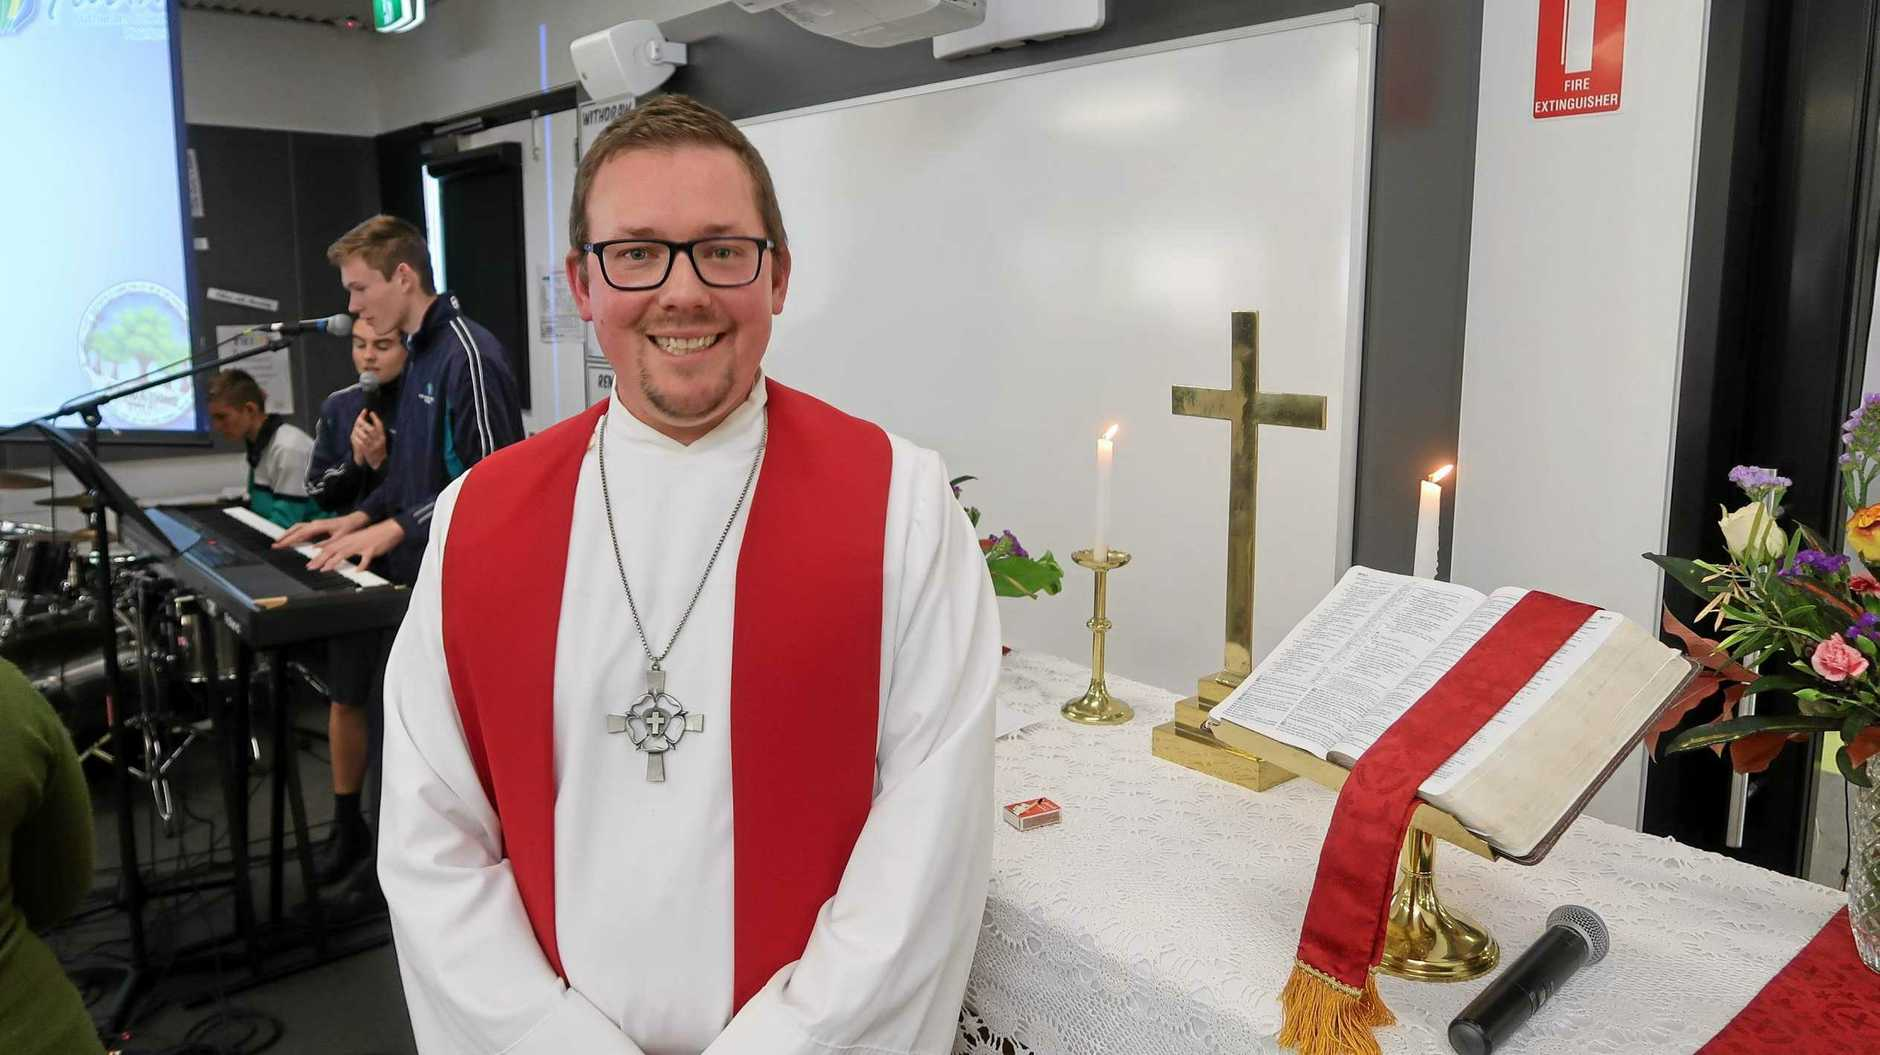 WELCOME: Luke Spilsbury is sworn in as pastor at Faith Lutheran College.